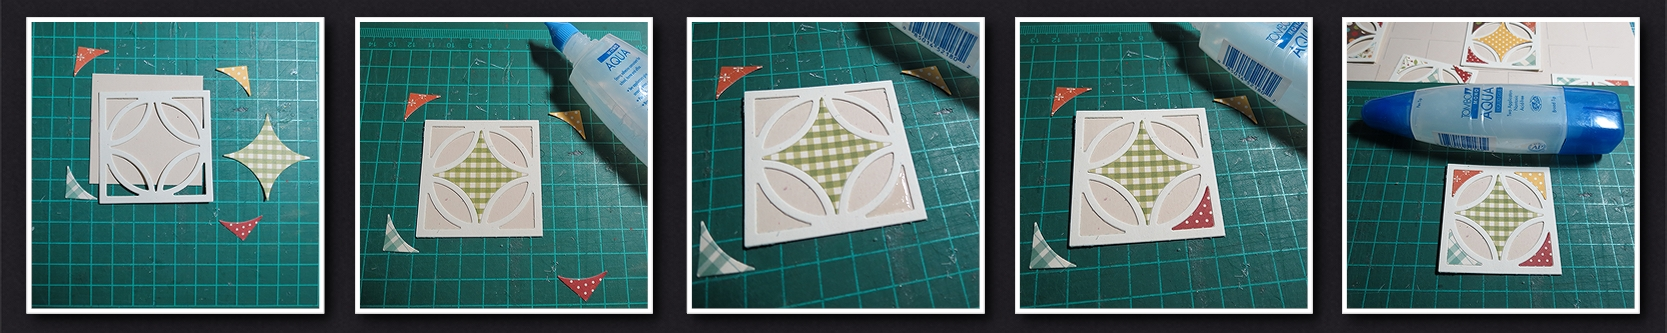 Mosaic Moments Diamond Ring Die for the Fall Quilt Scrapbook layout